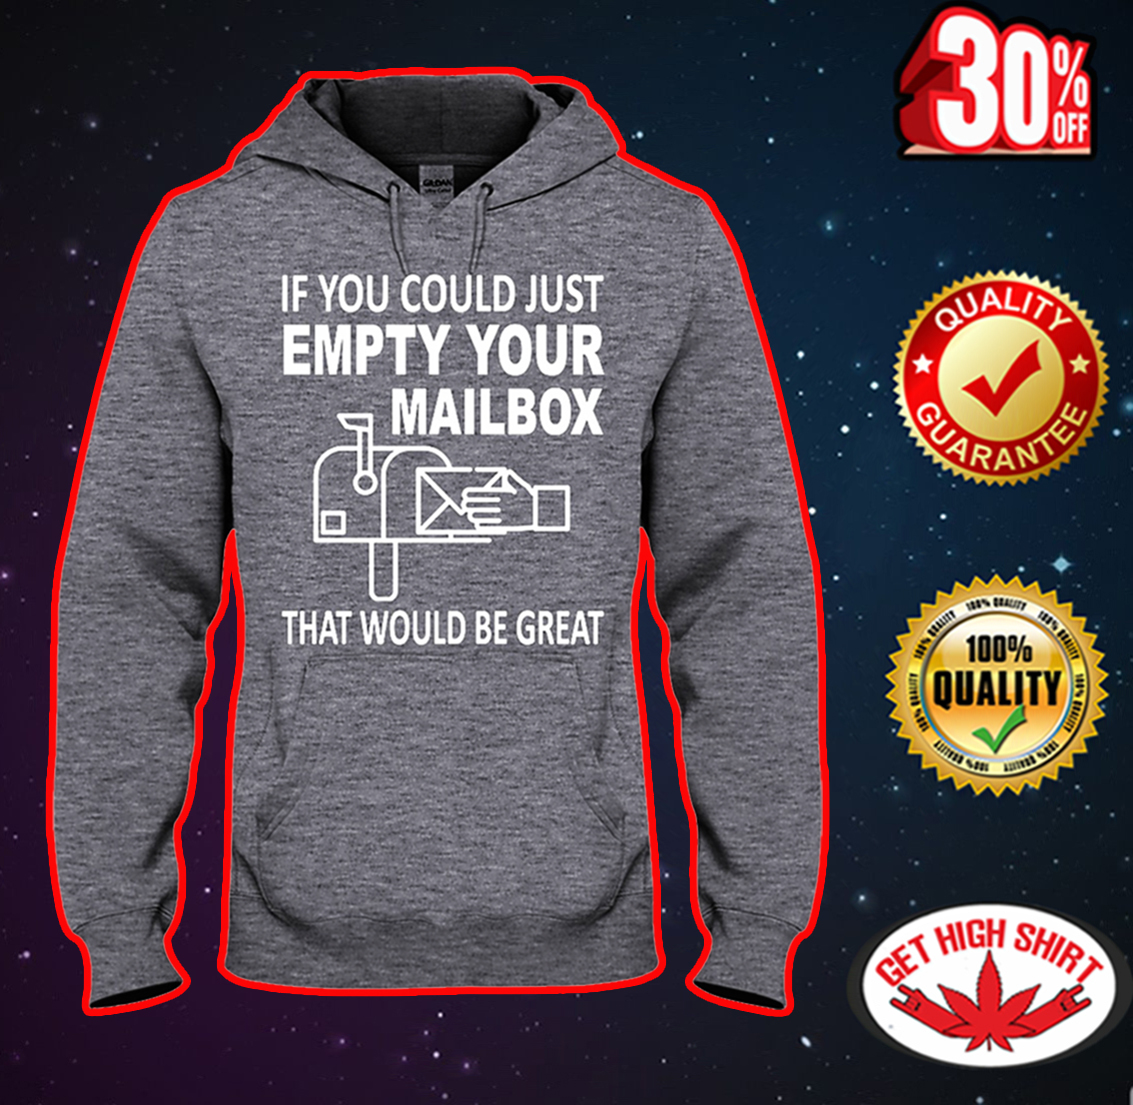 If you could just empty your mailbox that would be great hooded sweatshirt